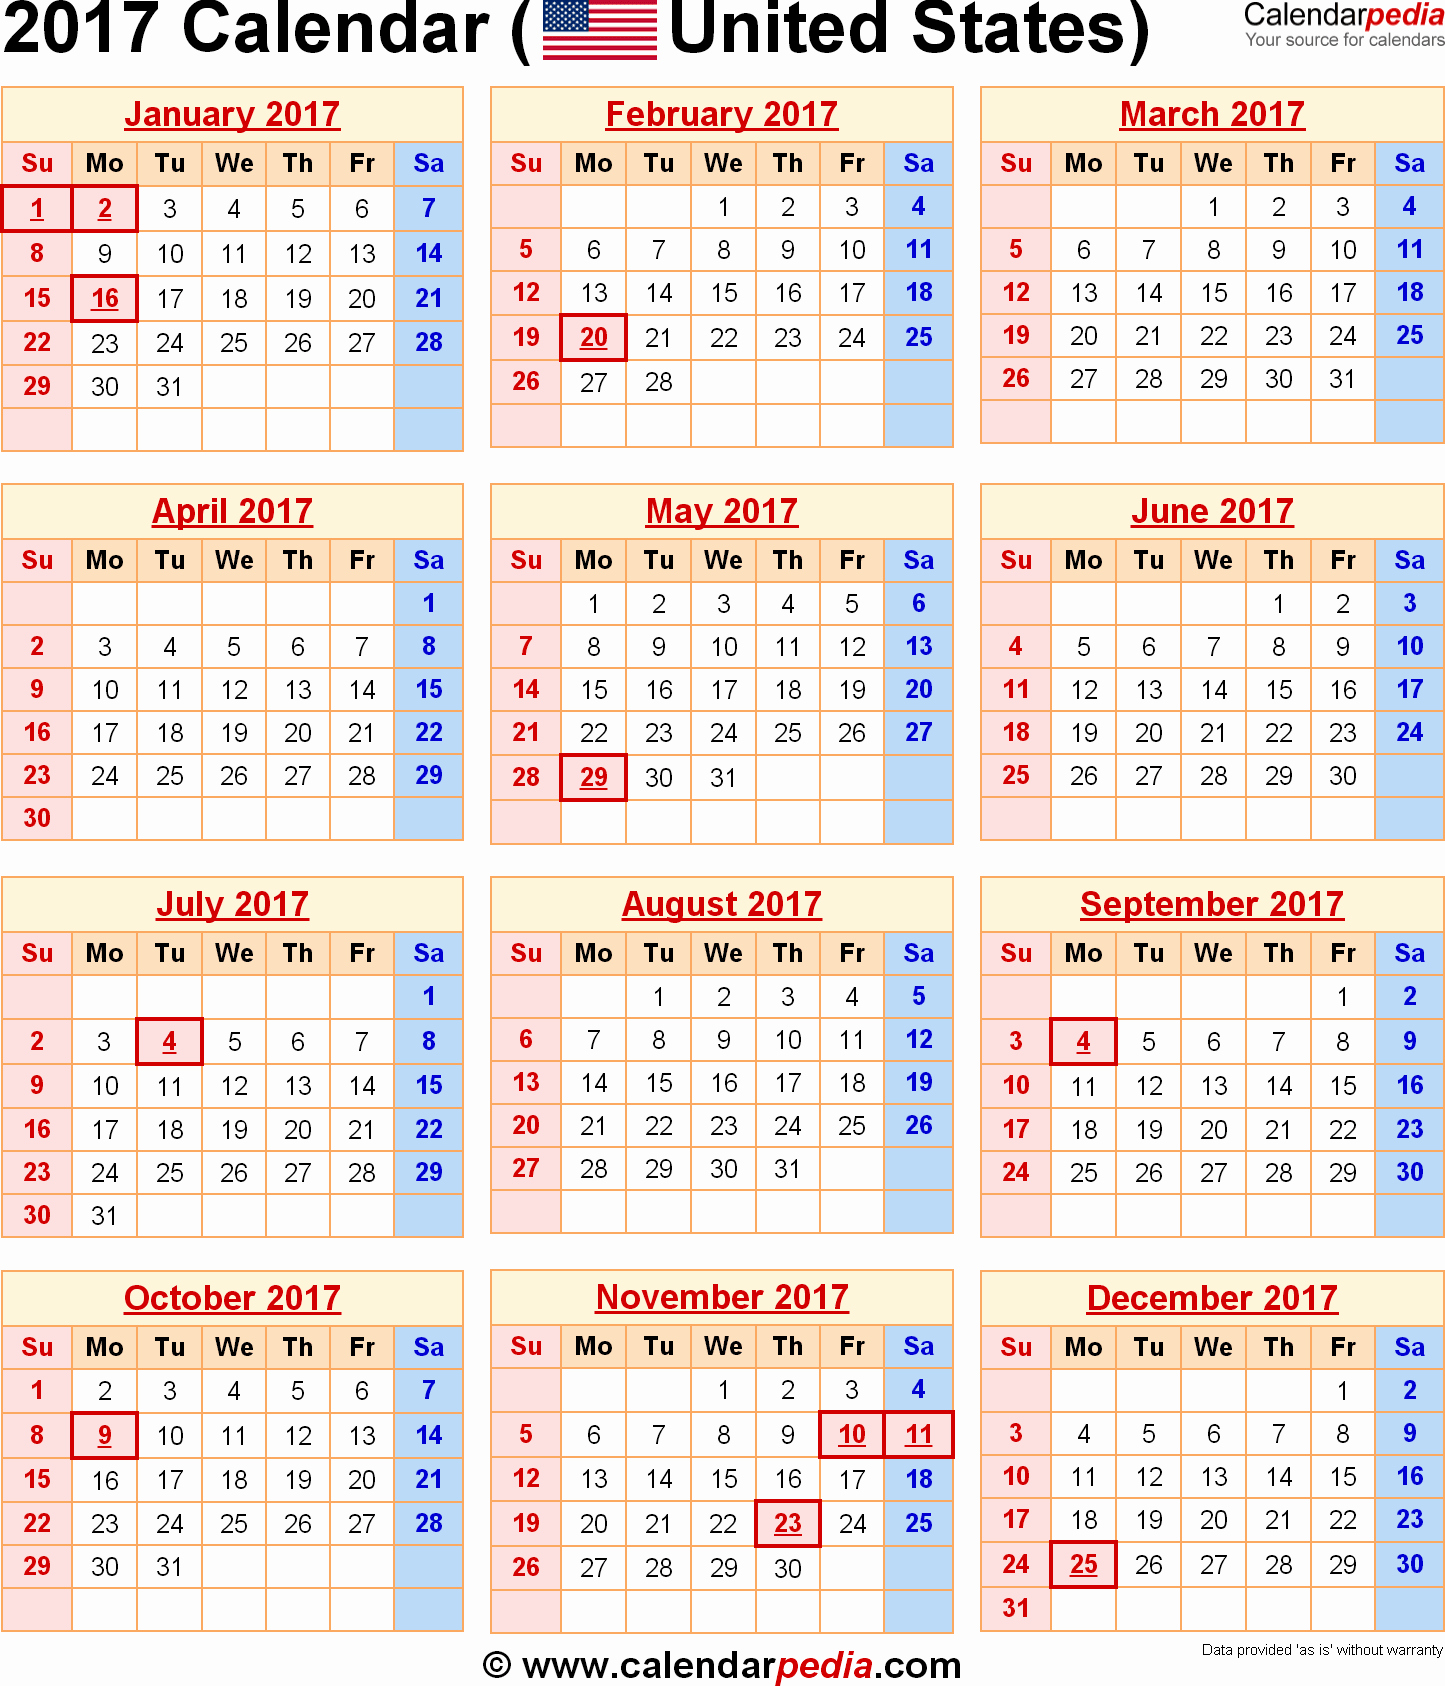 2017 Calendar with Holidays Template Lovely 2017 Calendar with Holidays